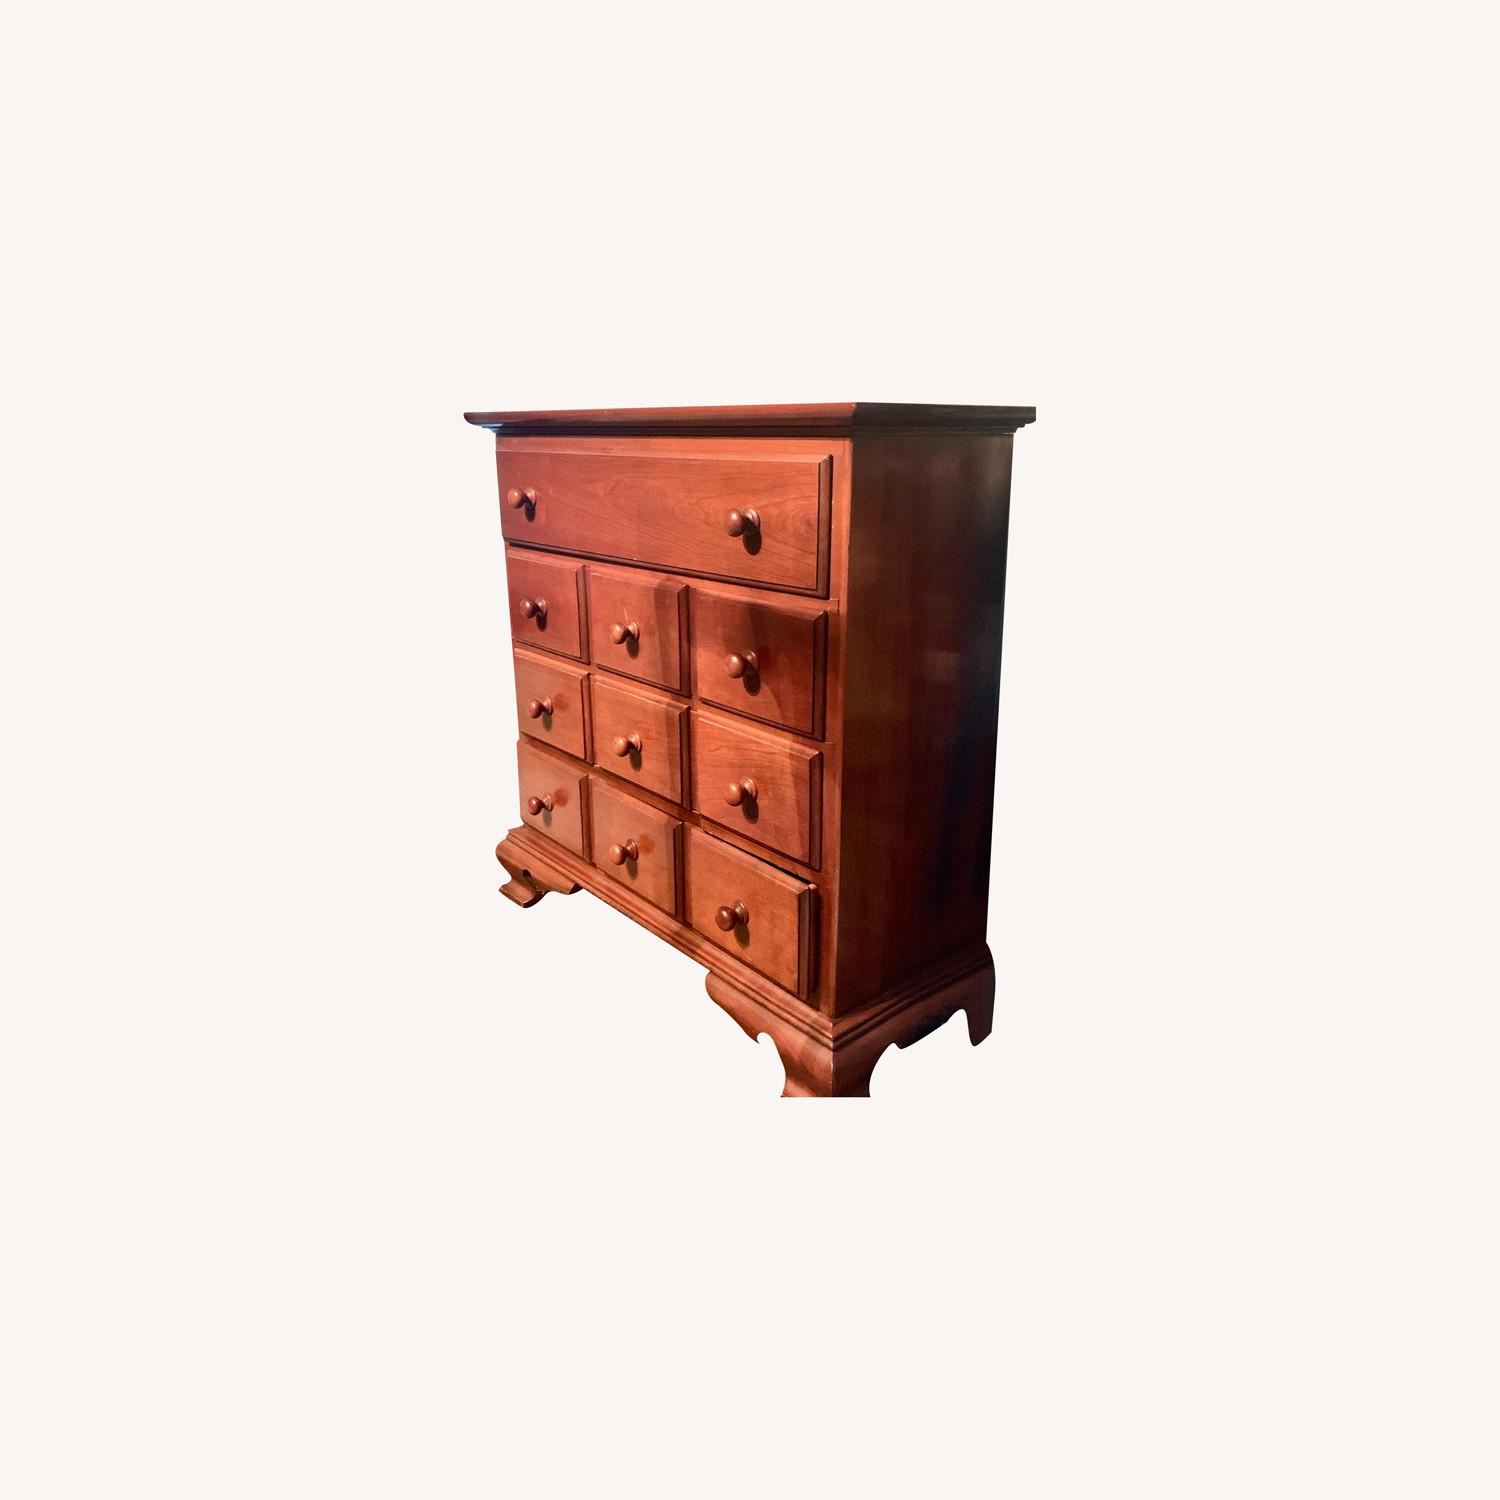 Antique Four-Drawer Wooden Chest - image-0